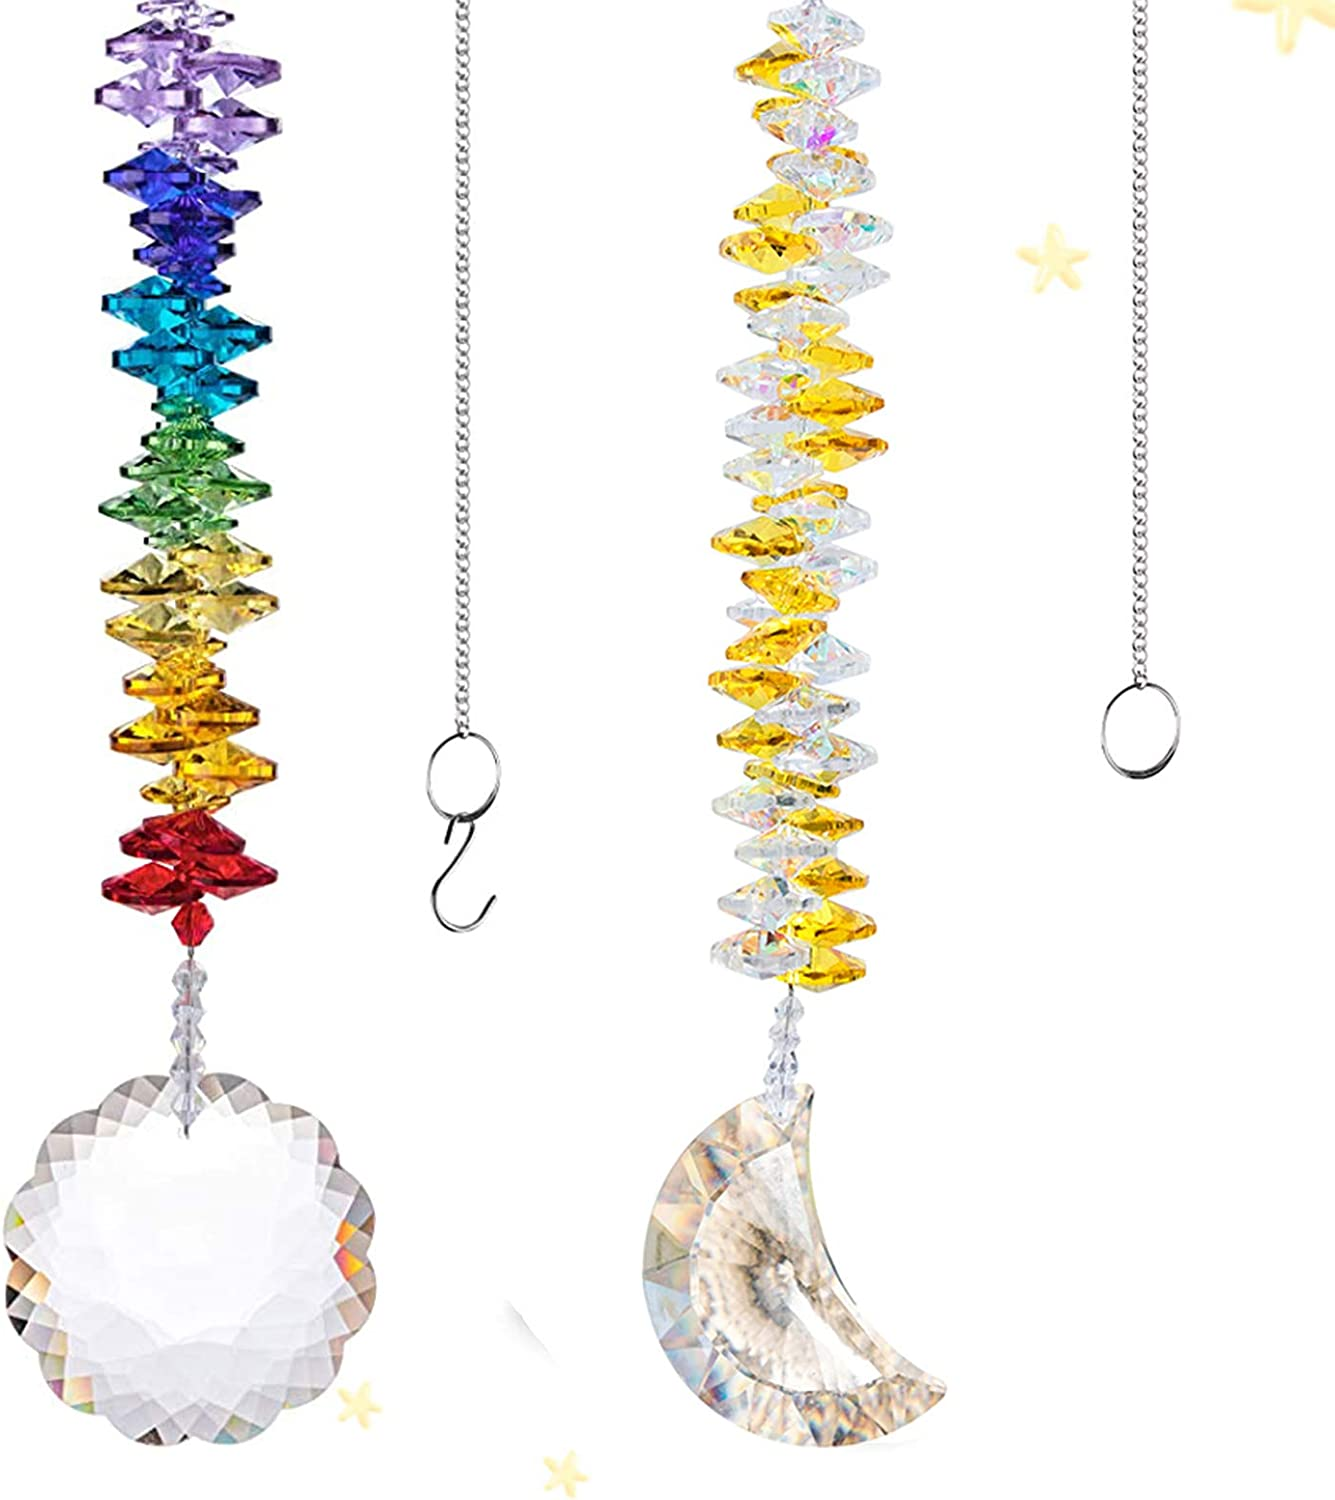 H&D HYALINE & DORA Suncatcher Crystal Window Ornaments,Handmade Hang Decor for Garden,Home,Party,Christmas Tree,Gift Boxed